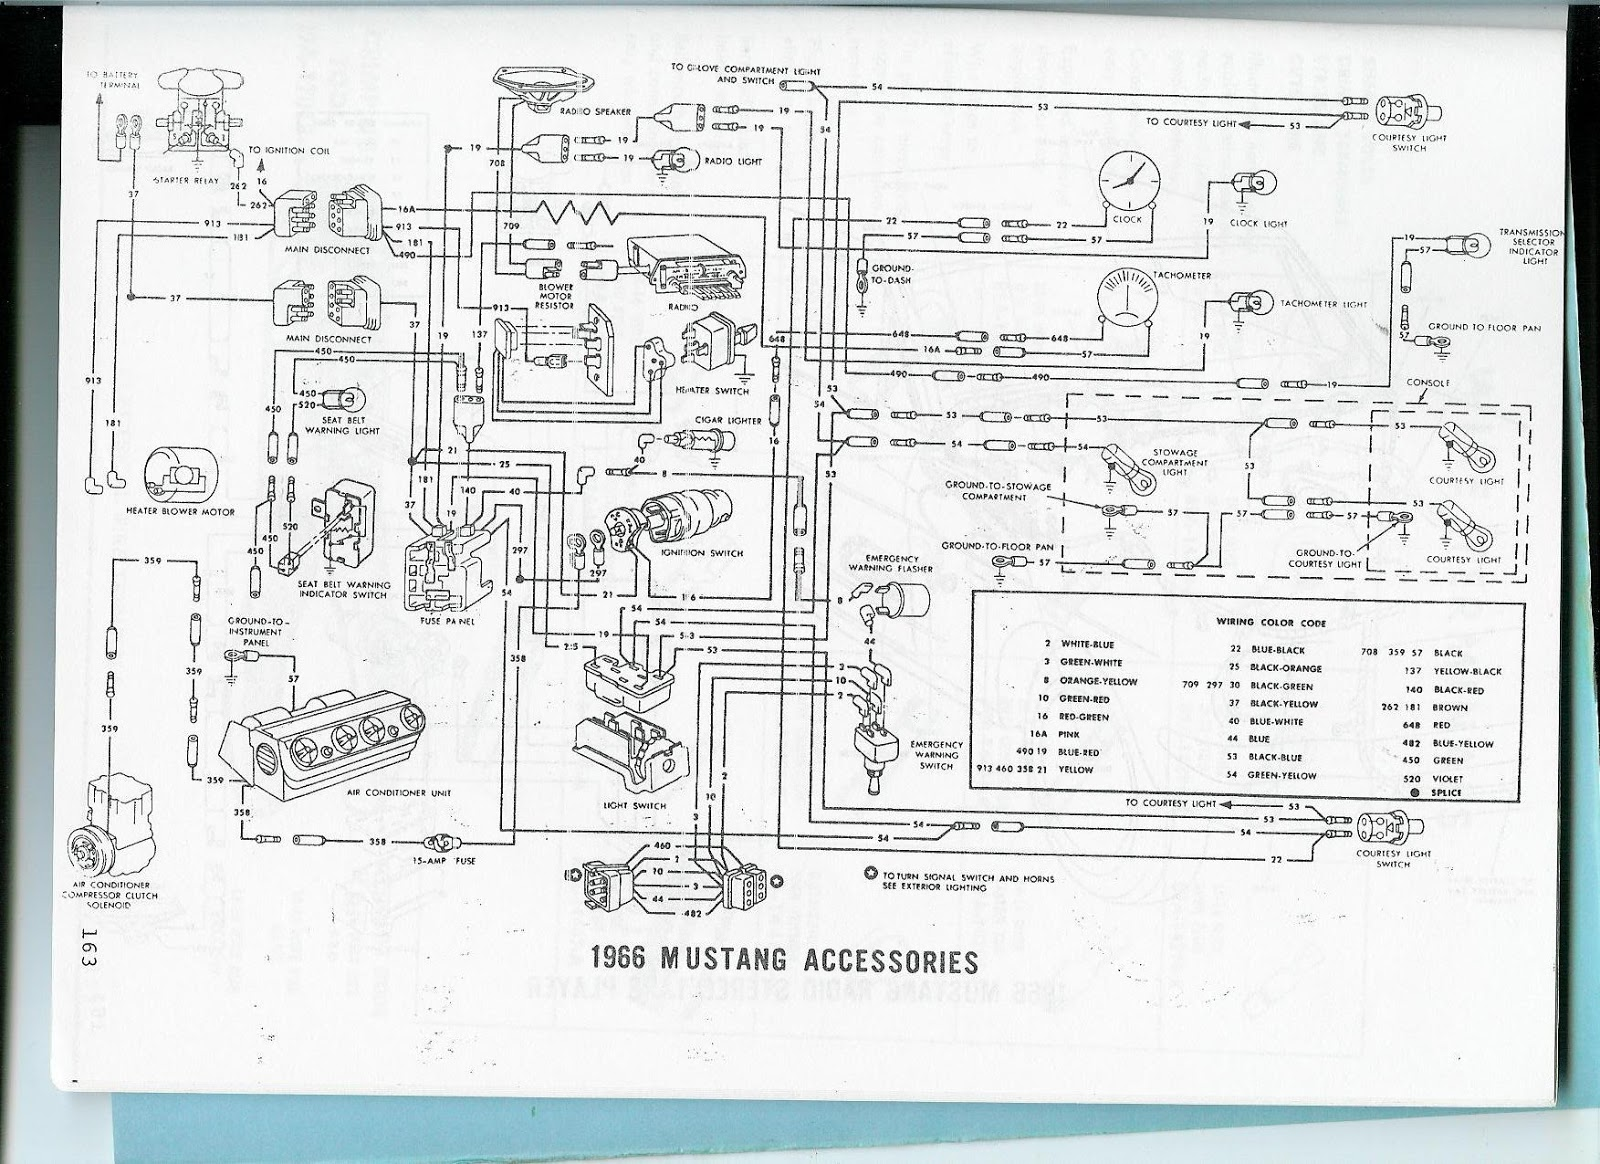 66 mustang wiring diagram 66 mustang wiring diagram schematic